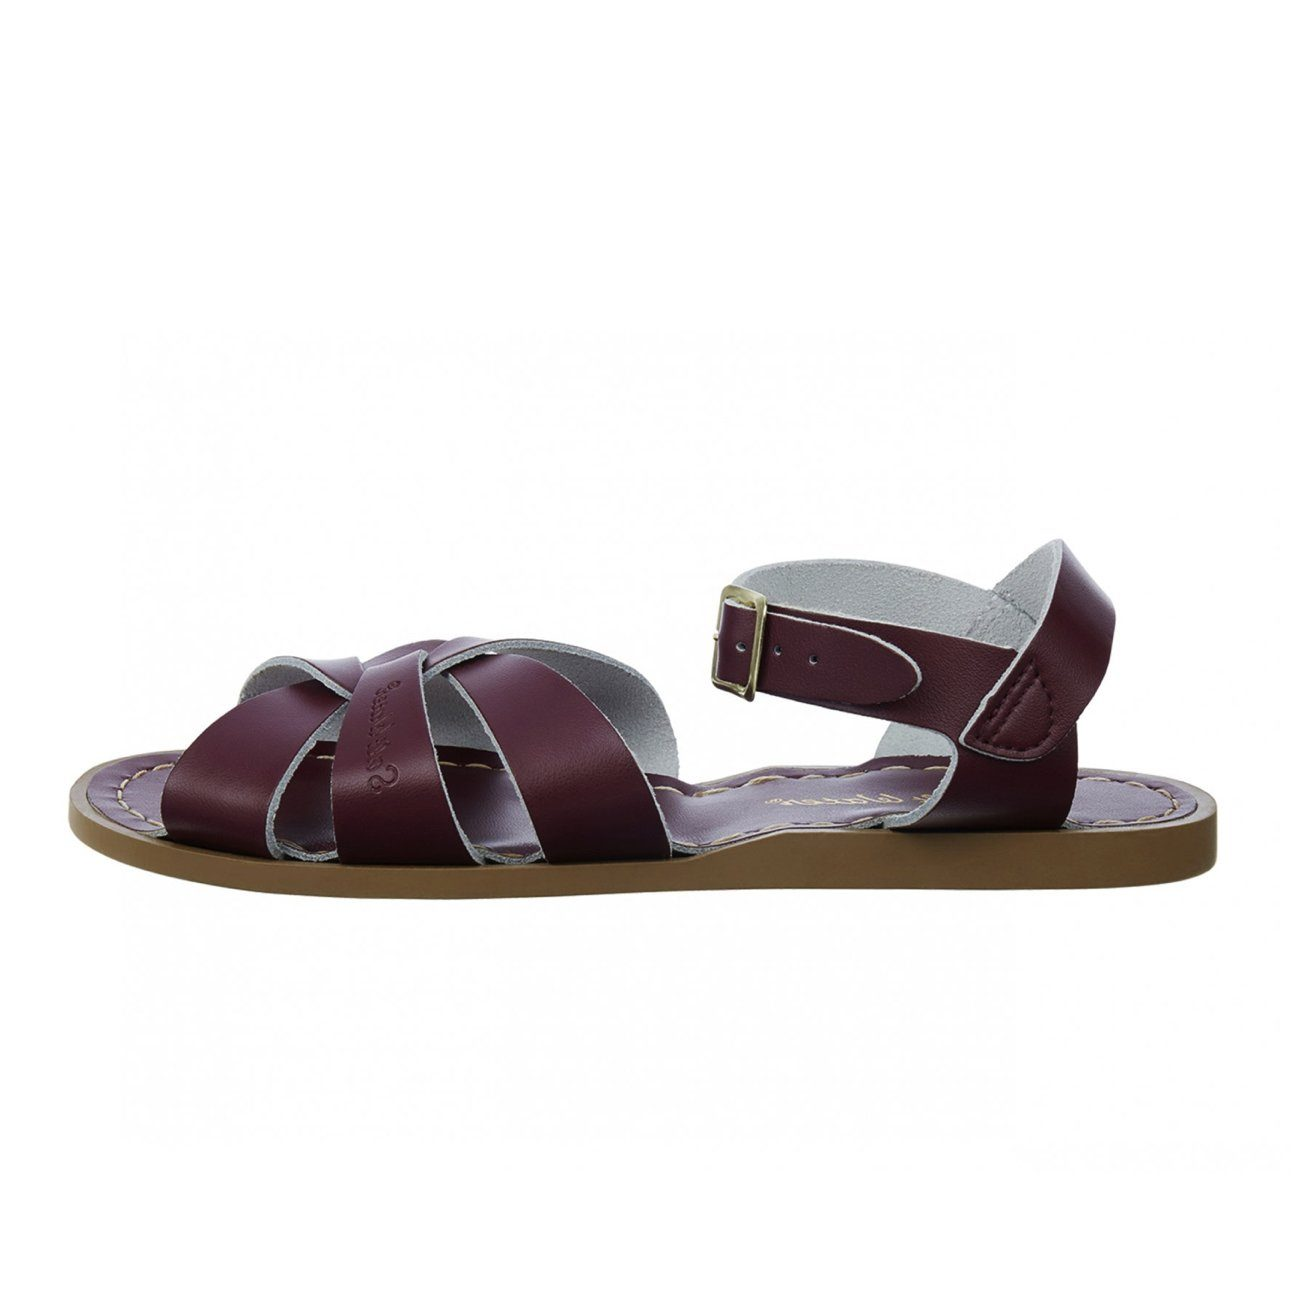 Salt Water Sandals, Original, Youth, Claret Sandals Salt Water Sandals Claret Y3